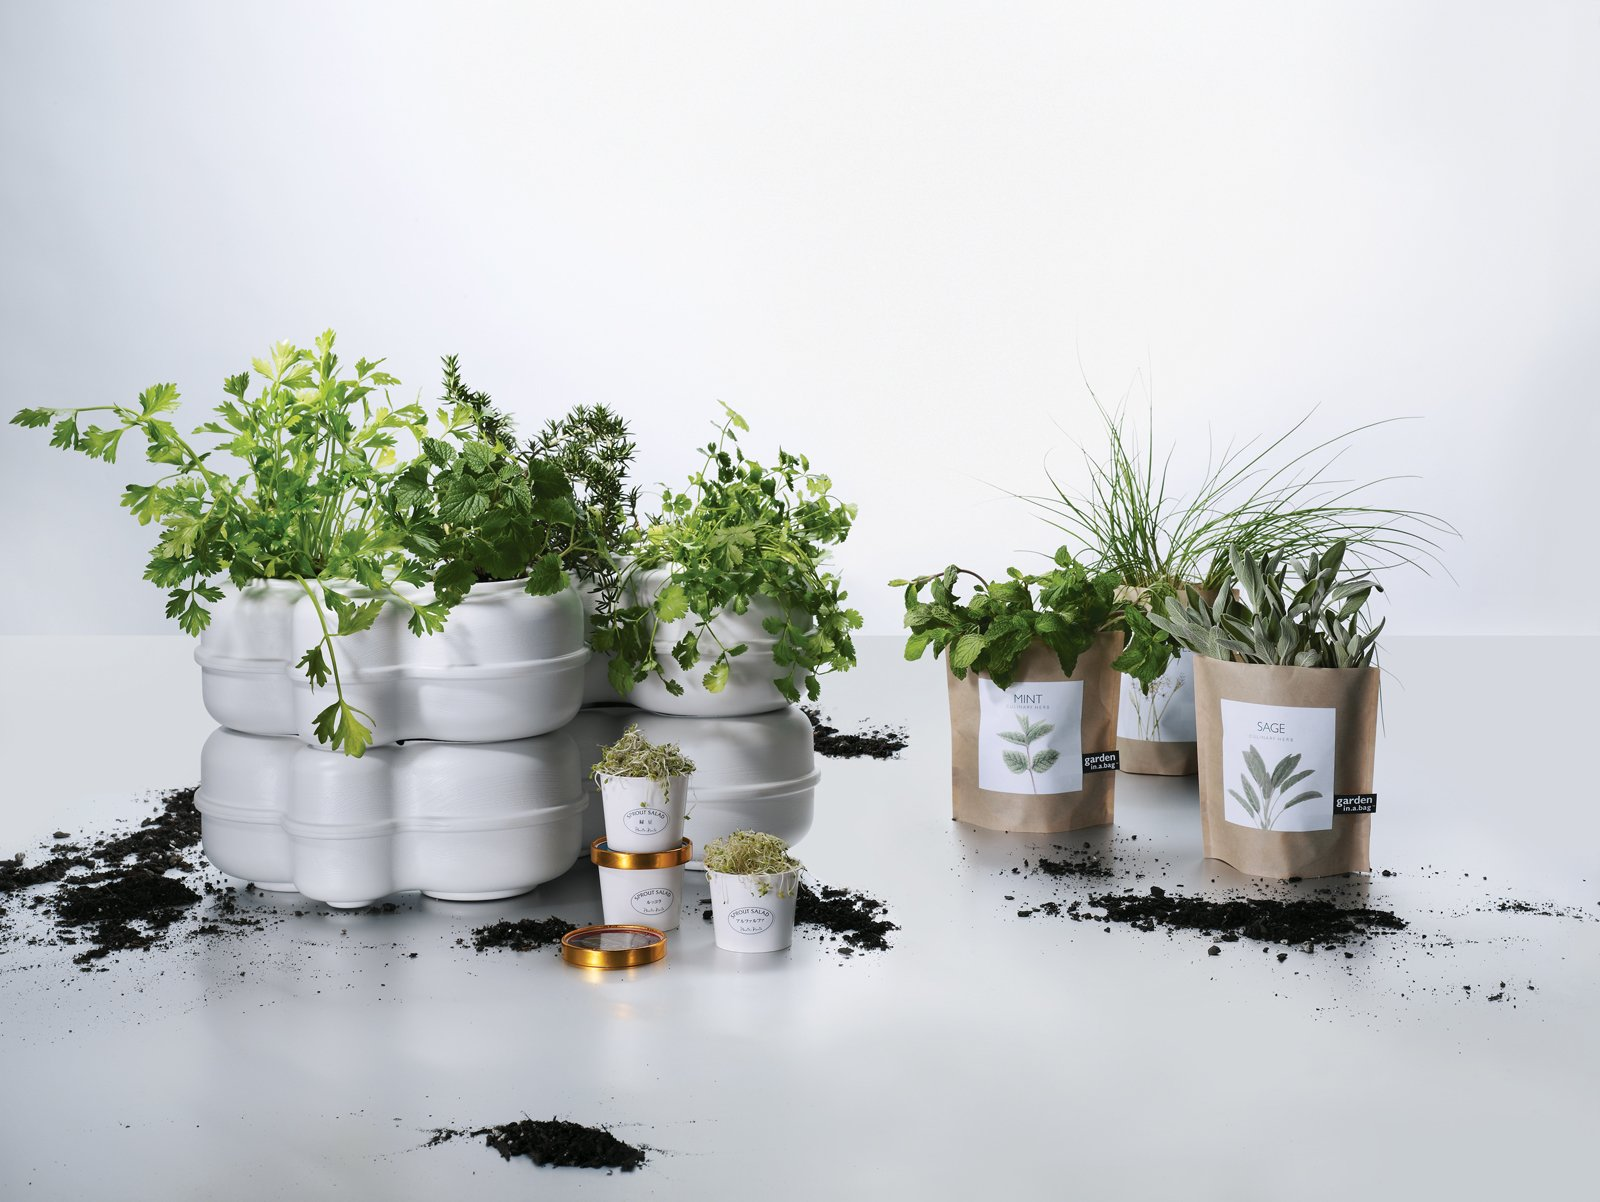 5 Simple Tips For Growing an Indoor Herb Garden - Dwell